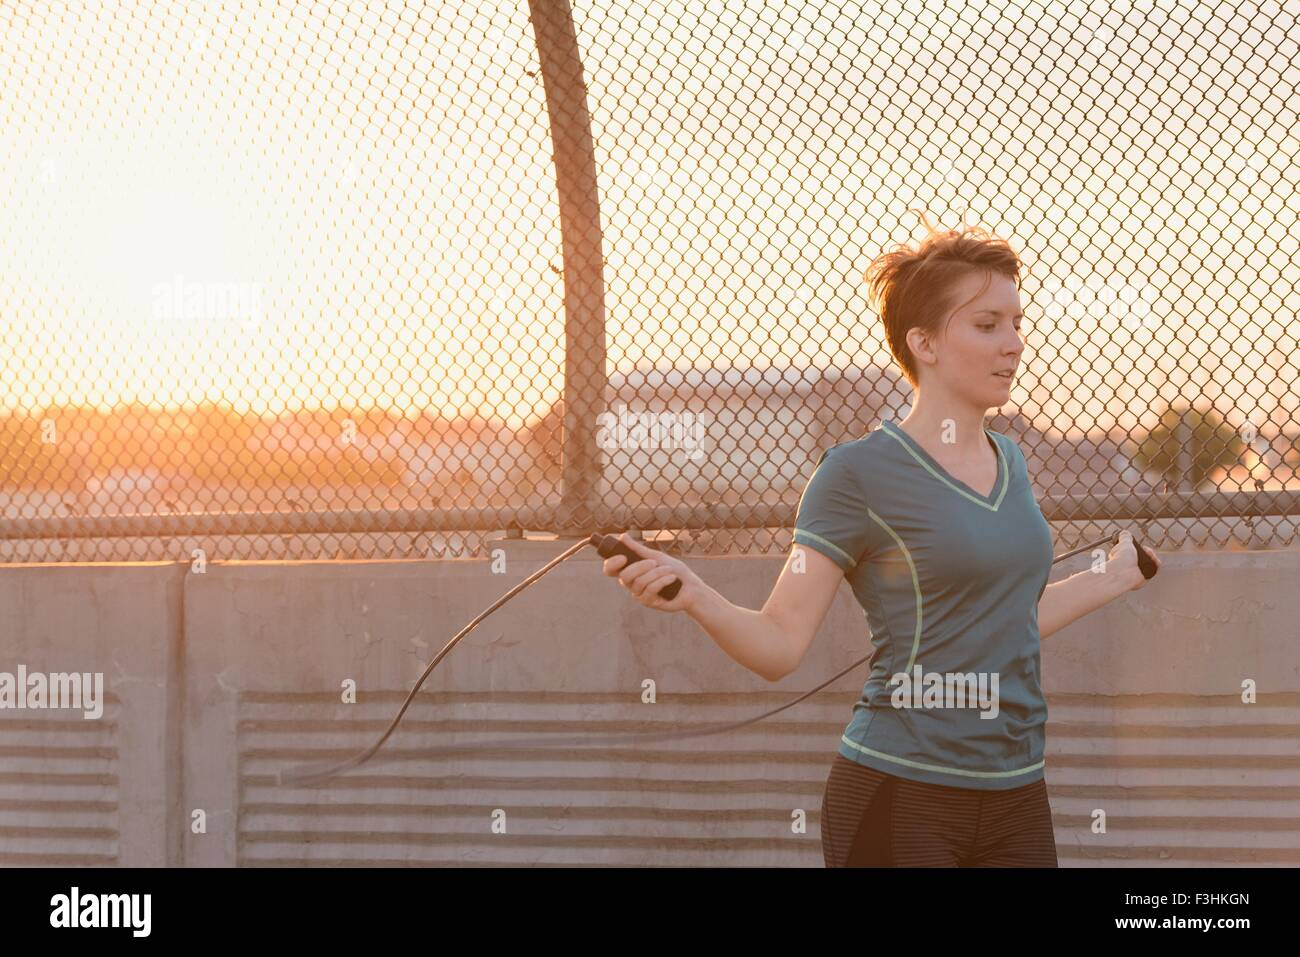 Mid adult woman, working out, skipping, outdoors - Stock Image